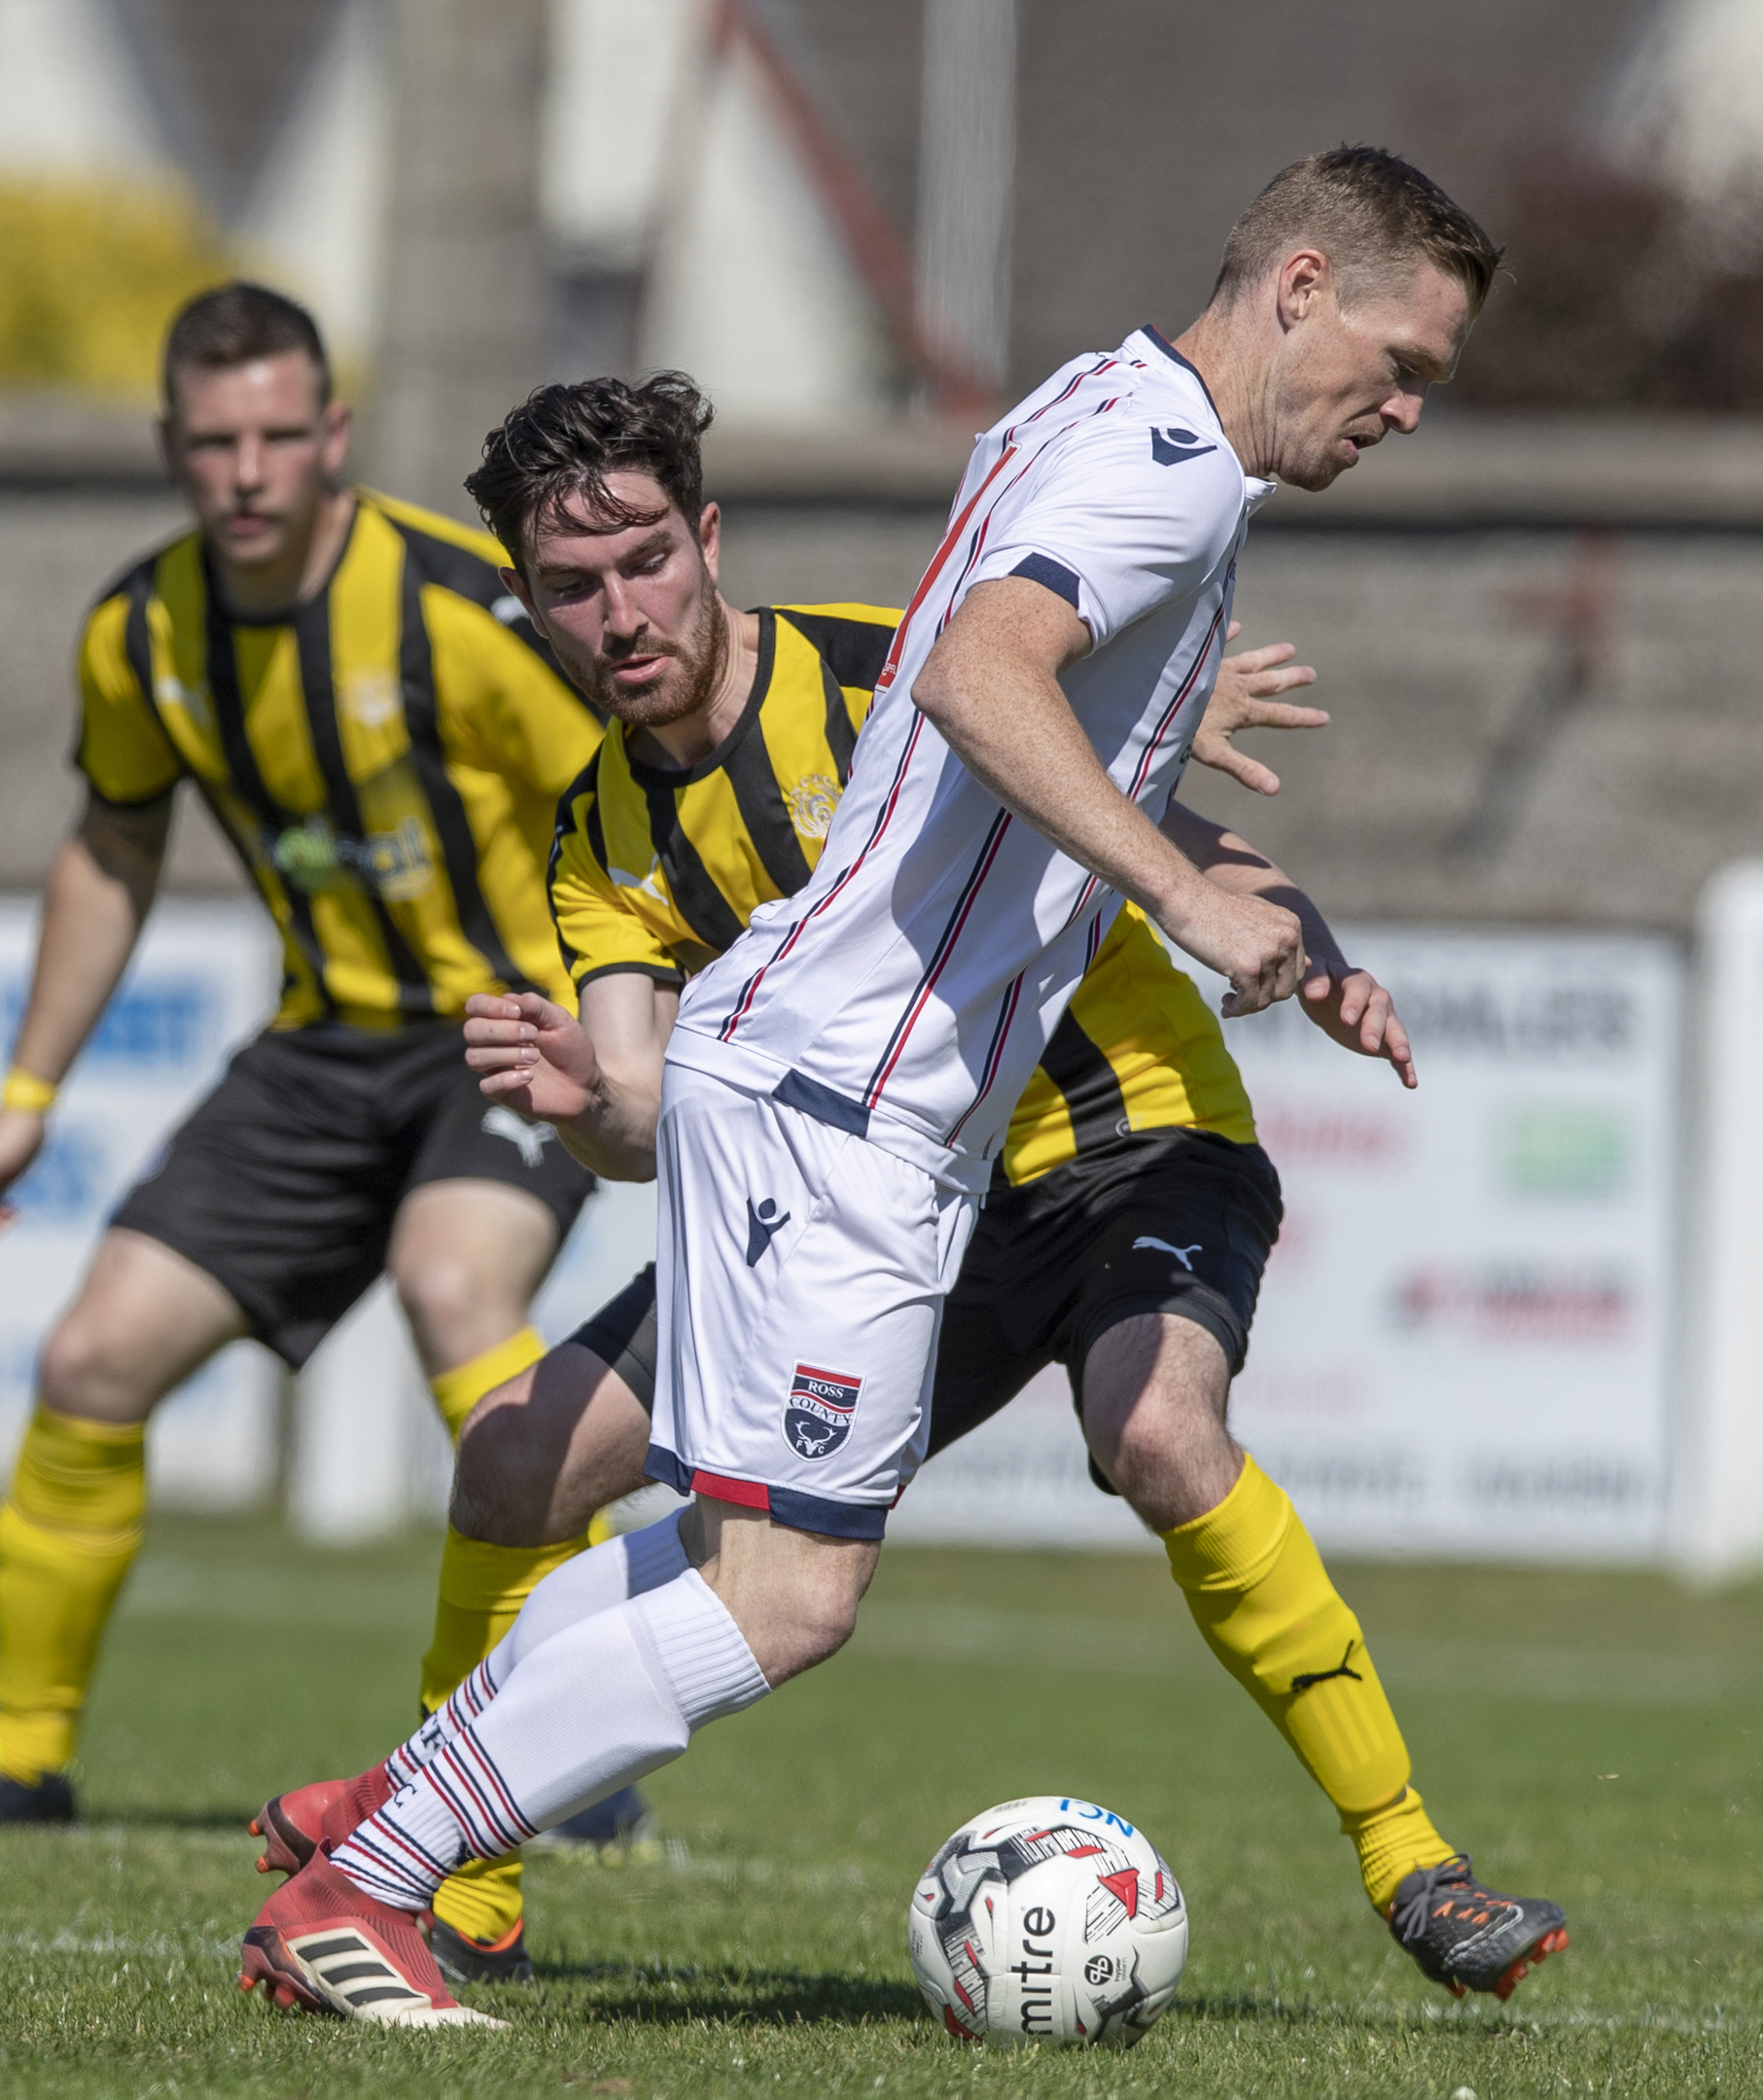 Callum Maclean has signed a new contract with Nairn County.